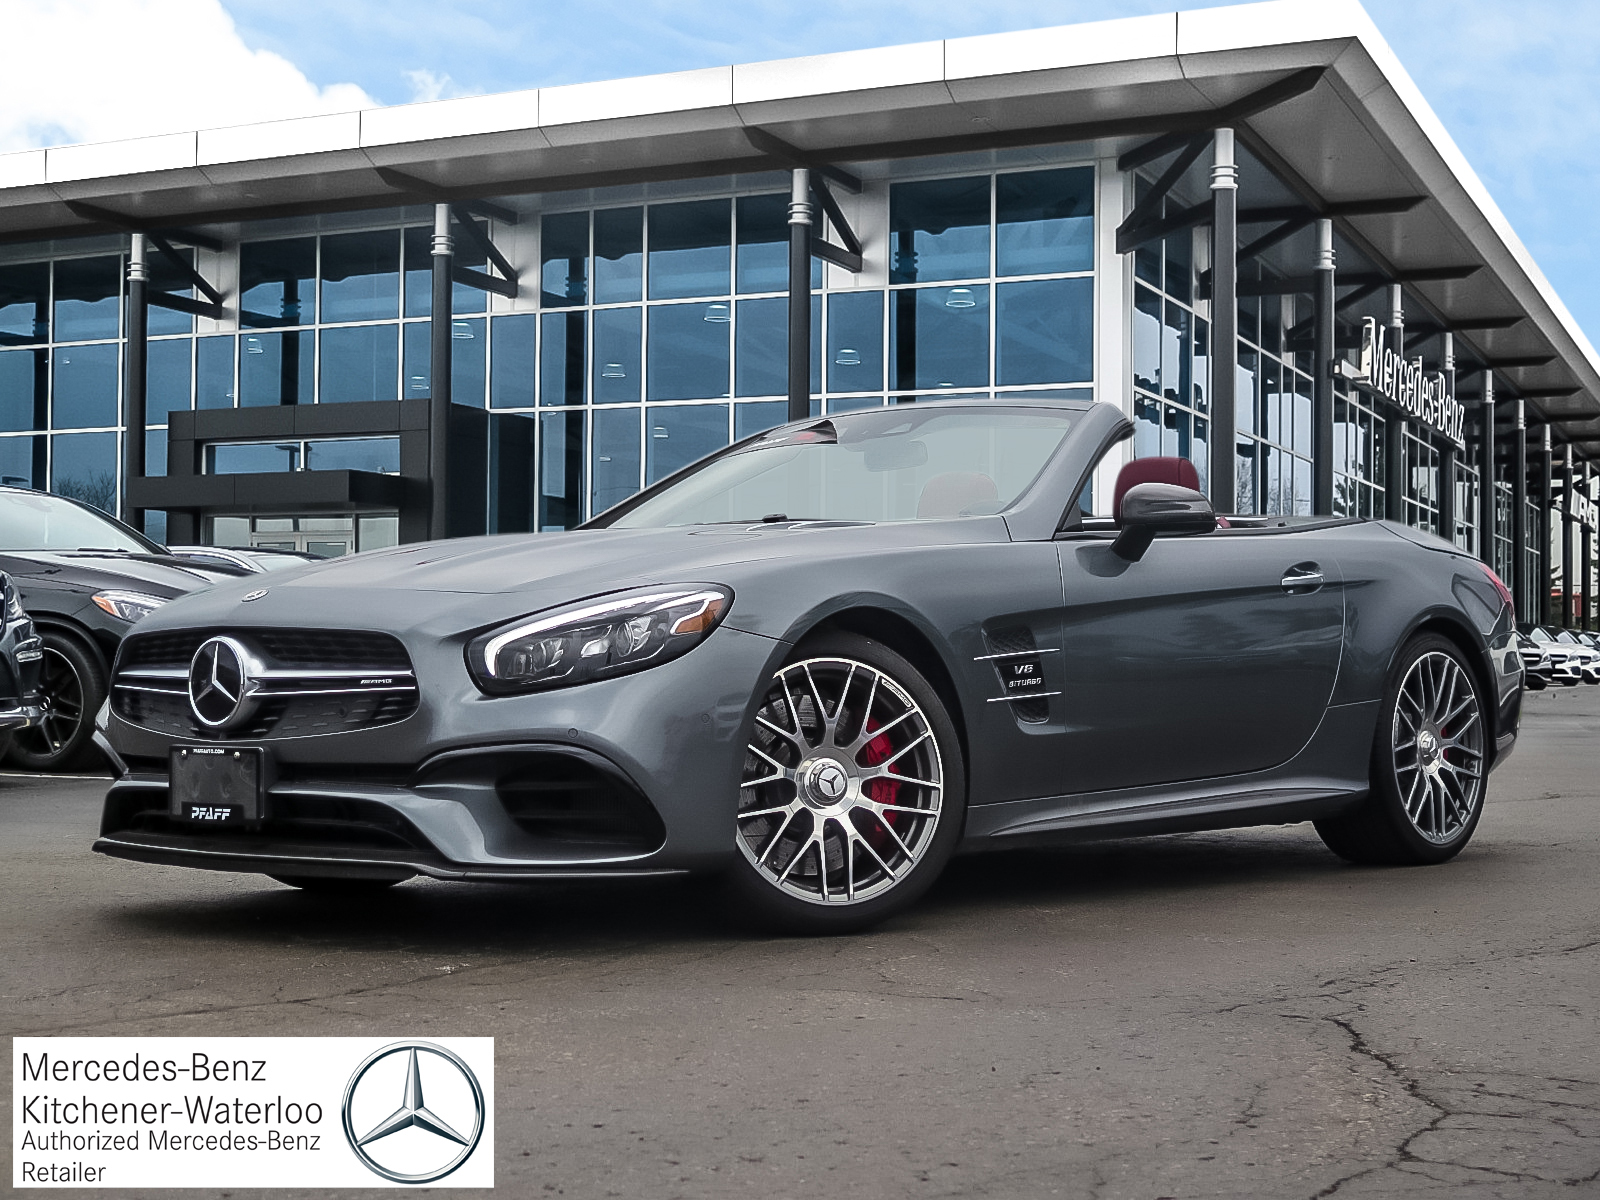 Certified Pre-Owned 2018 Mercedes-Benz SL63 AMG Roadster